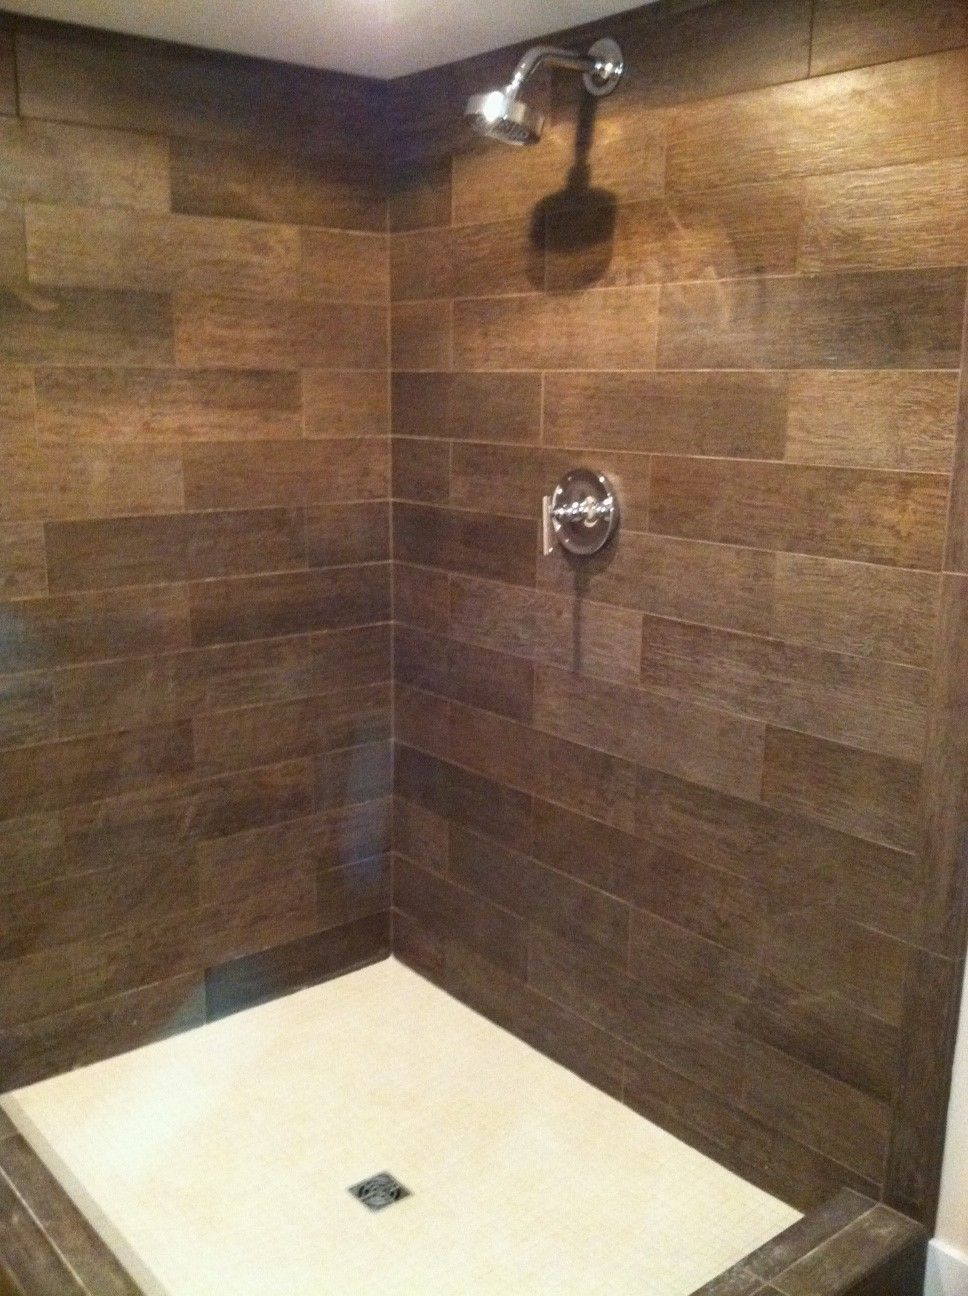 A Lower Level Shower Can Have A Warm Welcoming Feel When Given Such Classy Tile Get The Feel Of